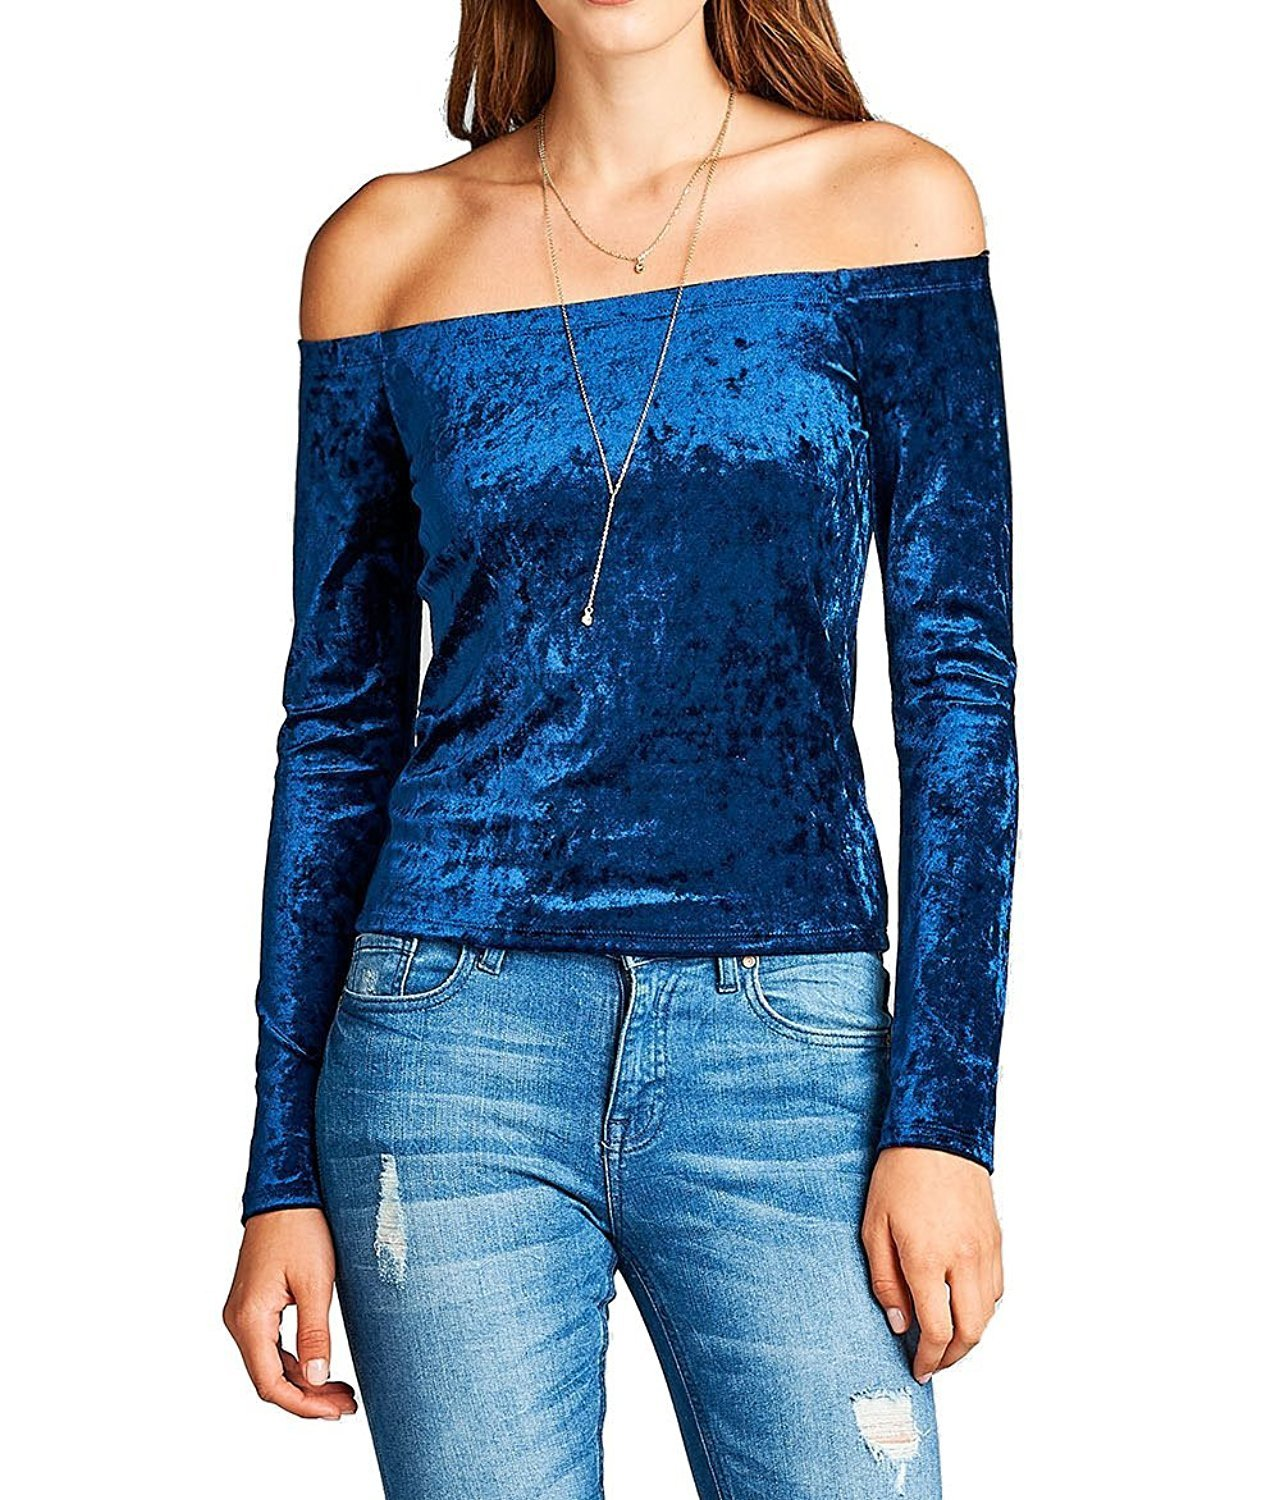 Khanomak Plain Soft Long Sleeve Off The Shoulder Ice Crushed Velvet Cropped Top